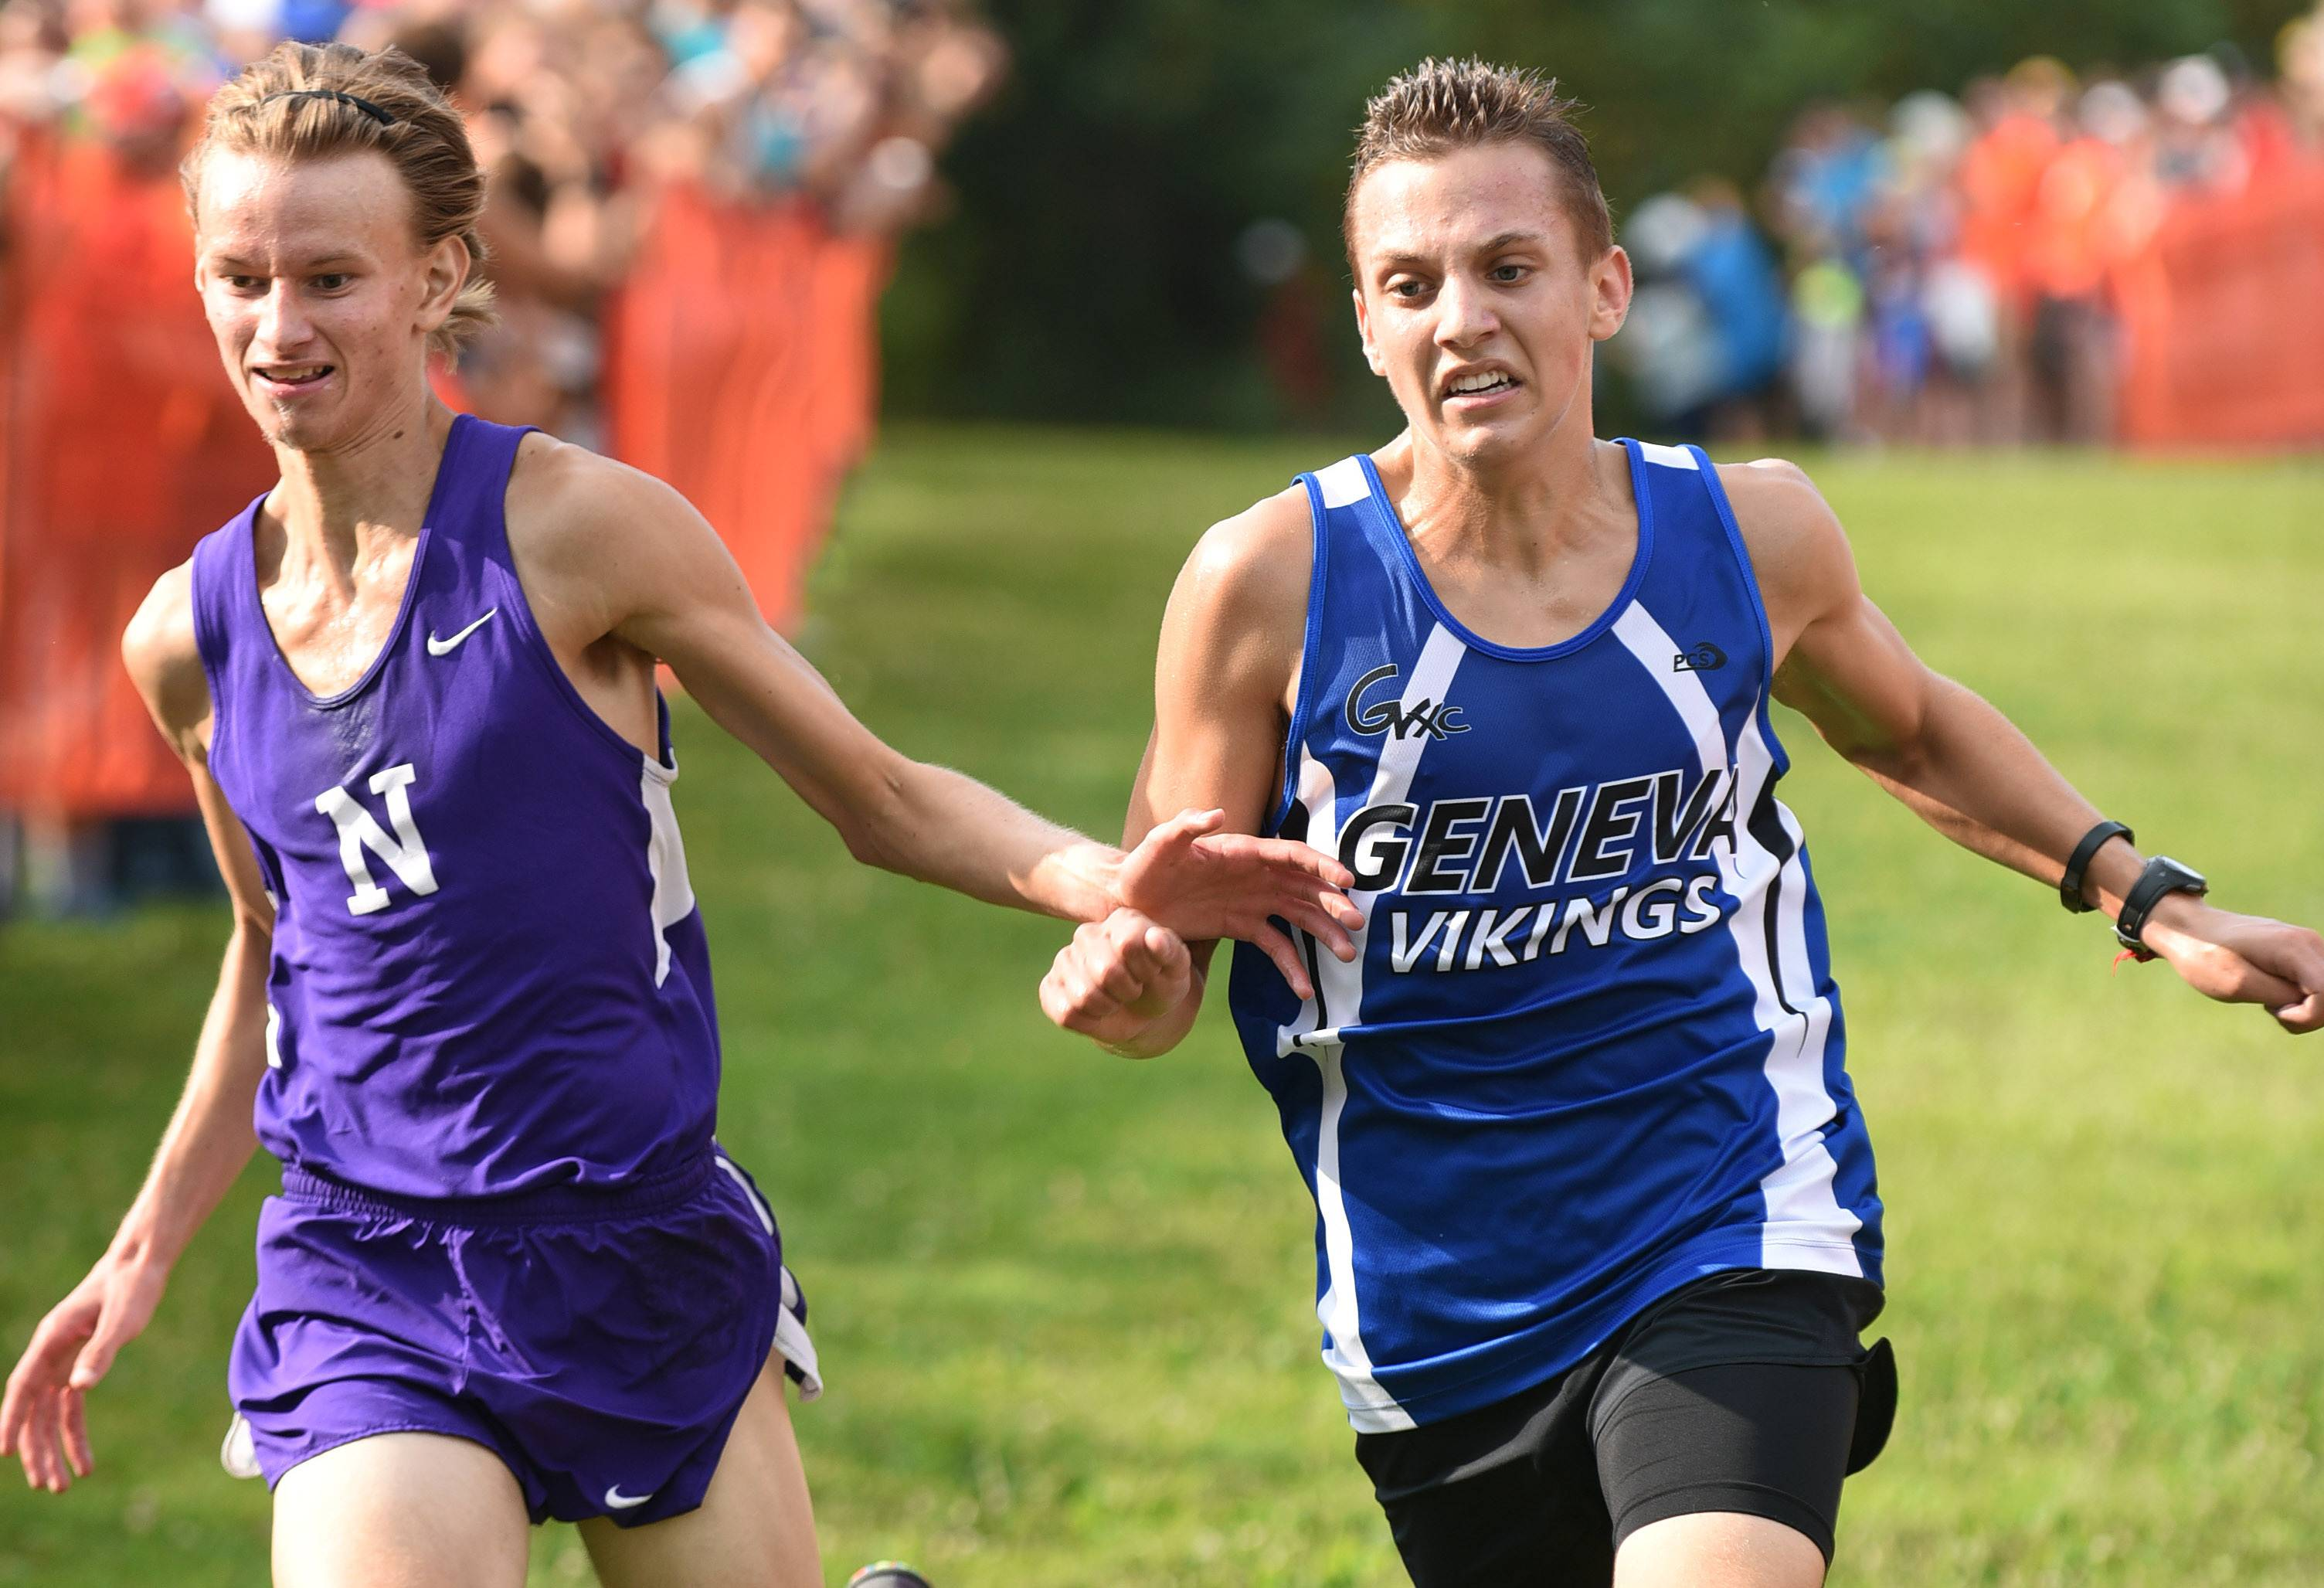 Laura Stoecker/lstoecker@dailyherald.comDowners Grove North's Robbie Prescott, left, is disqualified for trying to hold off Geneva's Tyler Dau at the finish line in the boys varsity run in the St. Charles East Leavey Invitational at LeRoy Oakes Forest Preserve in St. Charles Saturday.